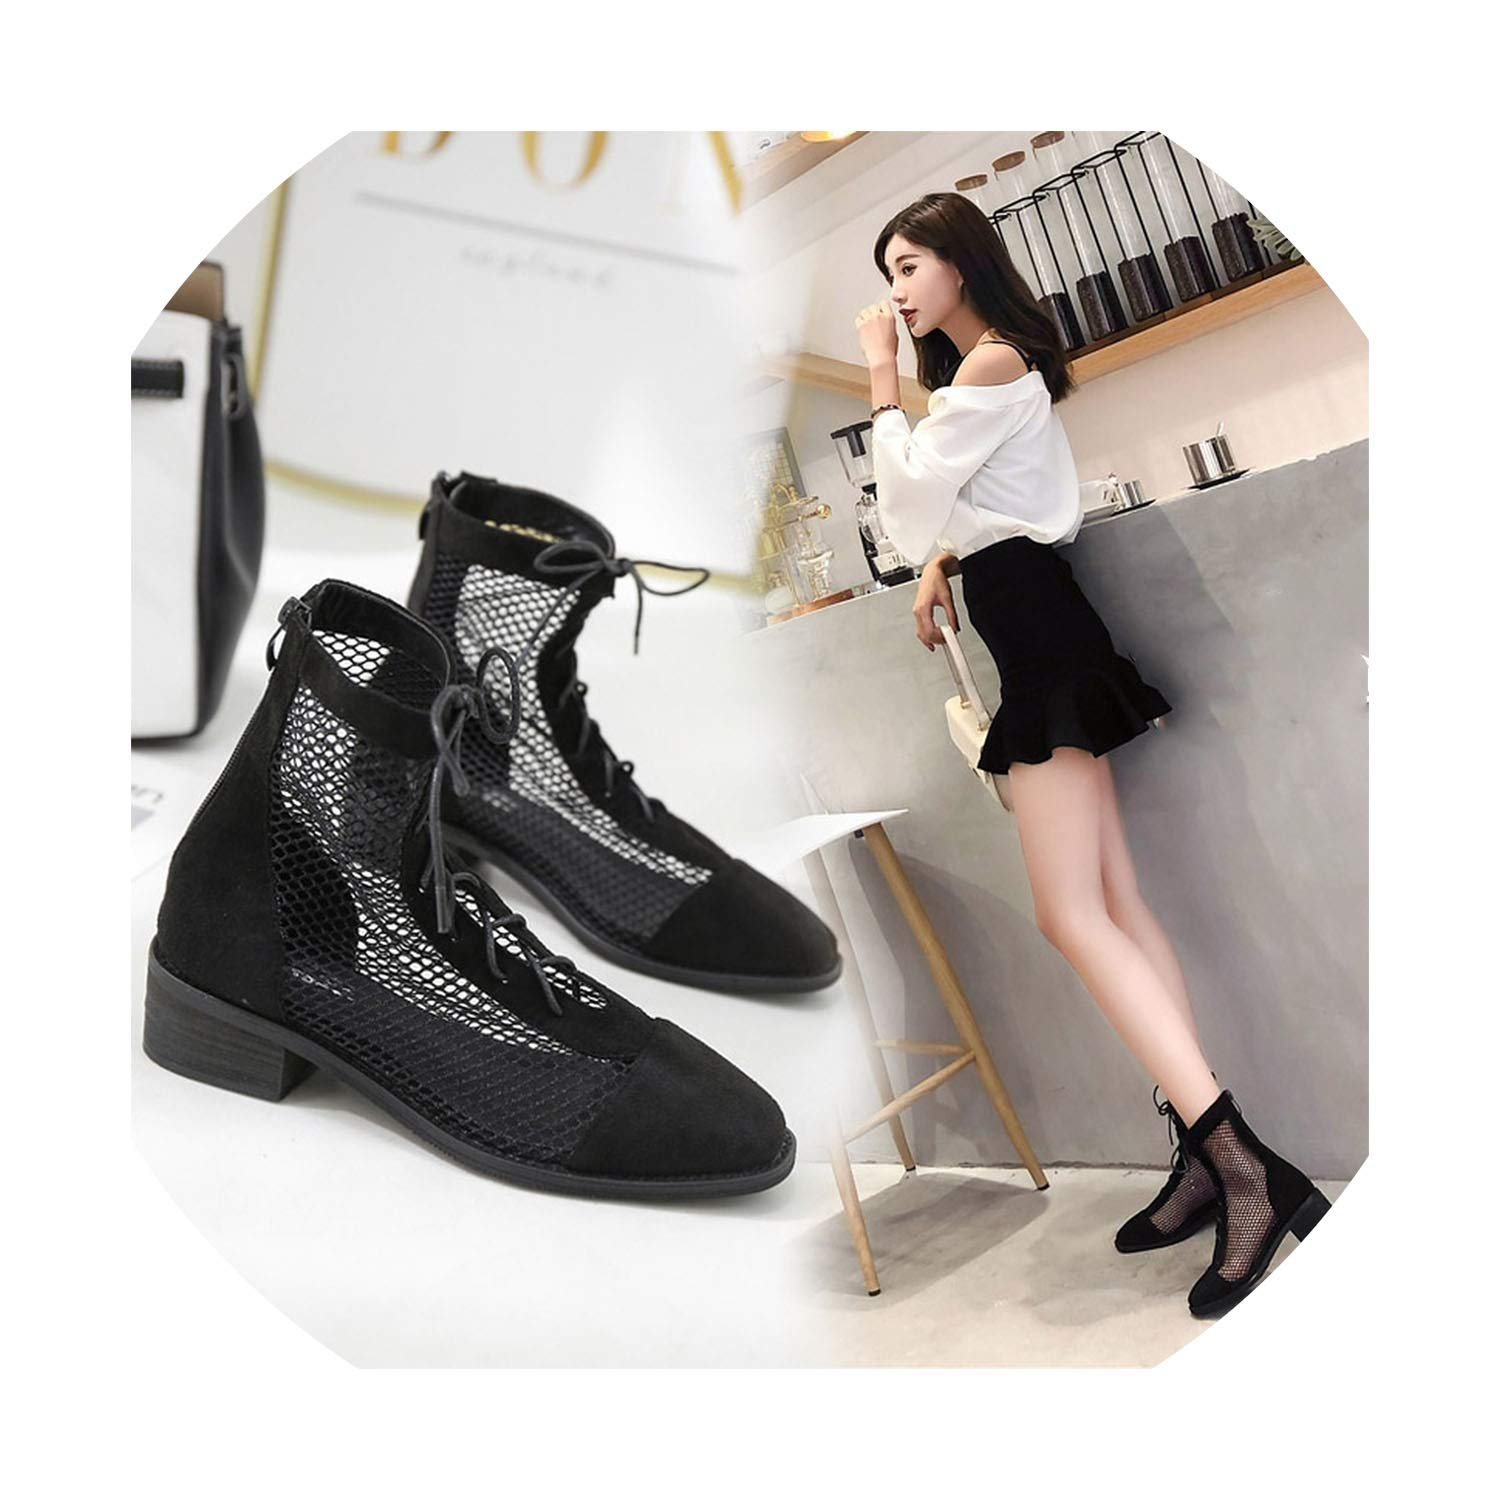 Womens Mesh Round Toe Low Heel Ankle-high Summer Sandals Boots Breathable Gladiator Sandals New Rome Party Shoes Lady,Black,6